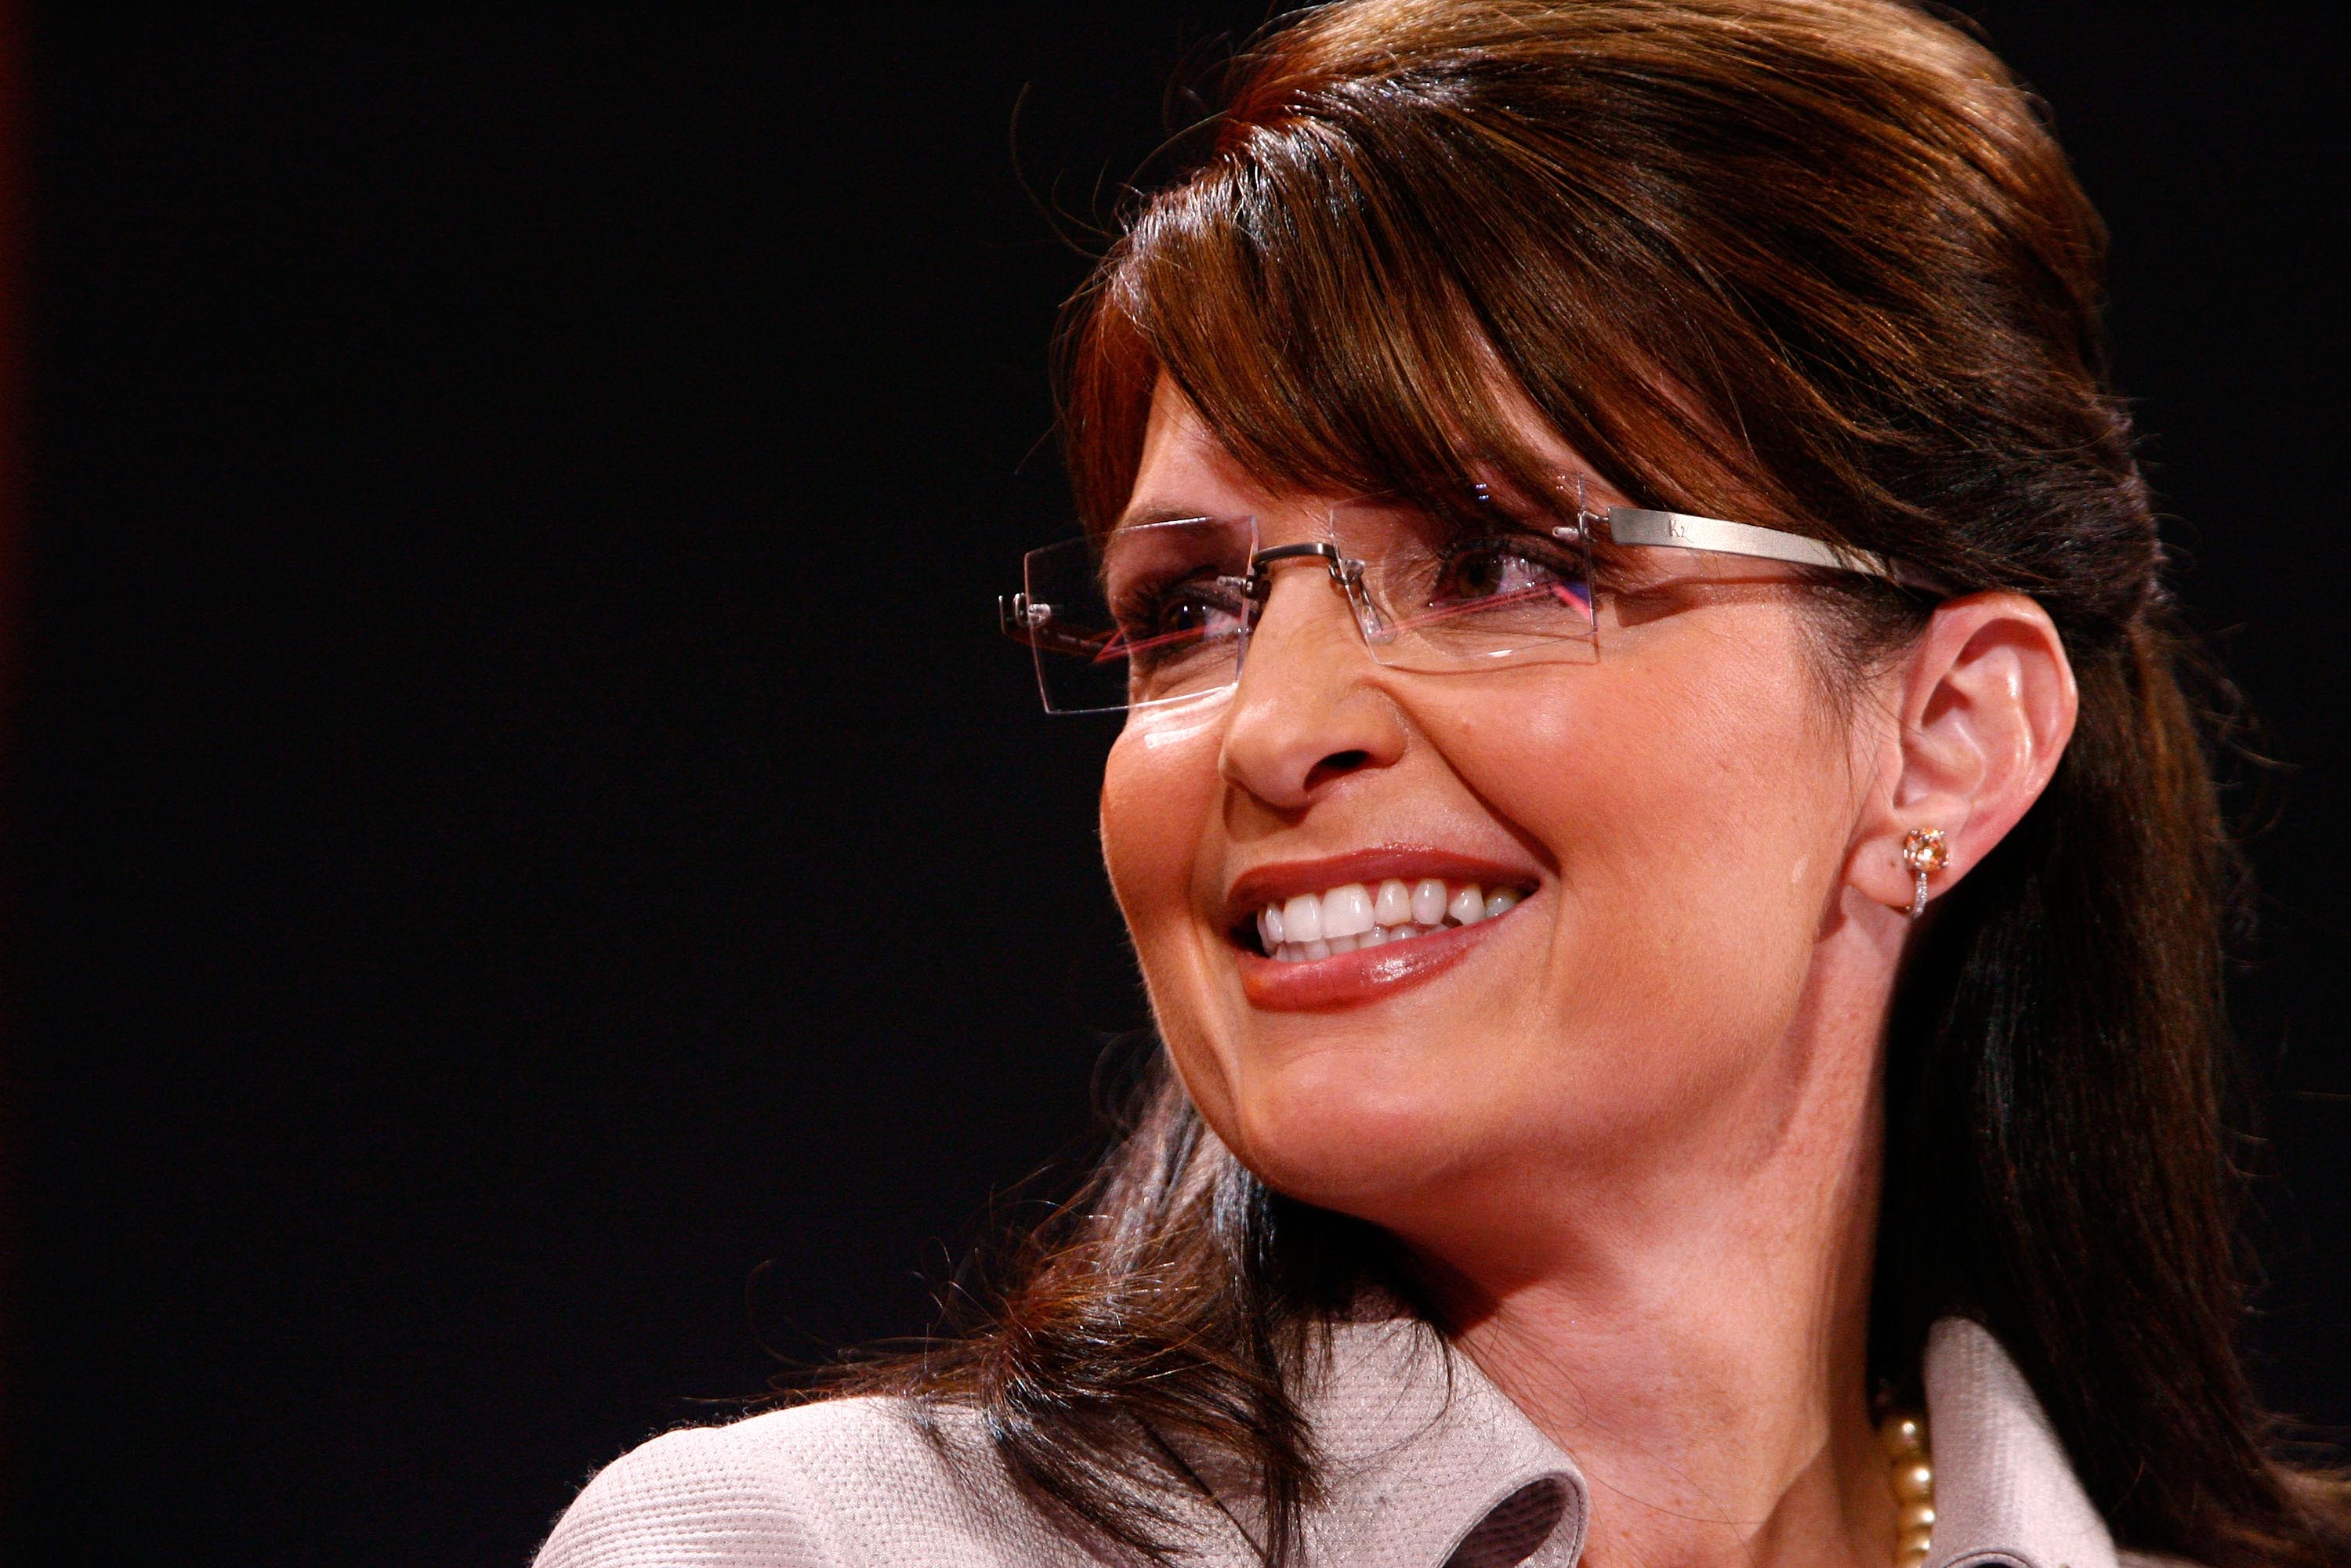 Sarah Palin hopes media treats Kamala Harris 'not as personally rough' as they treated her